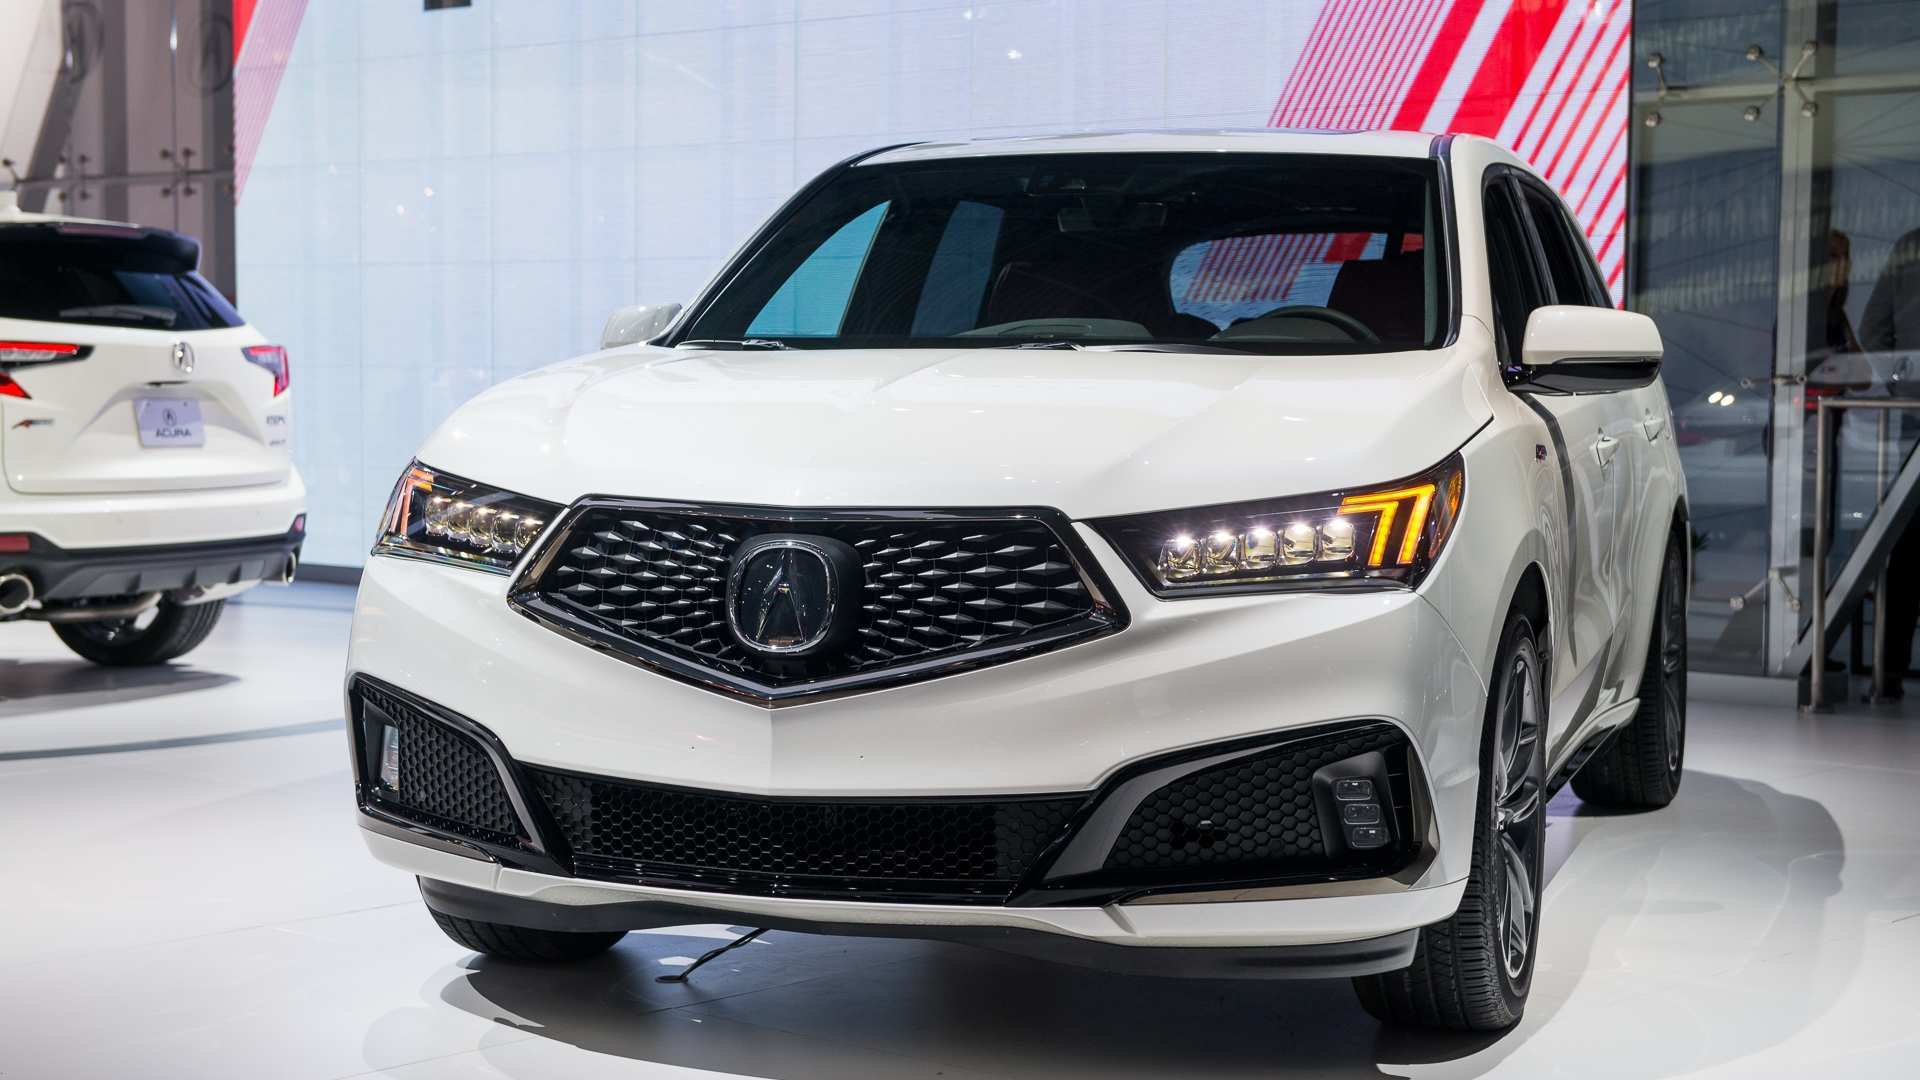 32 The 2019 Acura Mdx Release Date Spesification for 2019 Acura Mdx Release Date